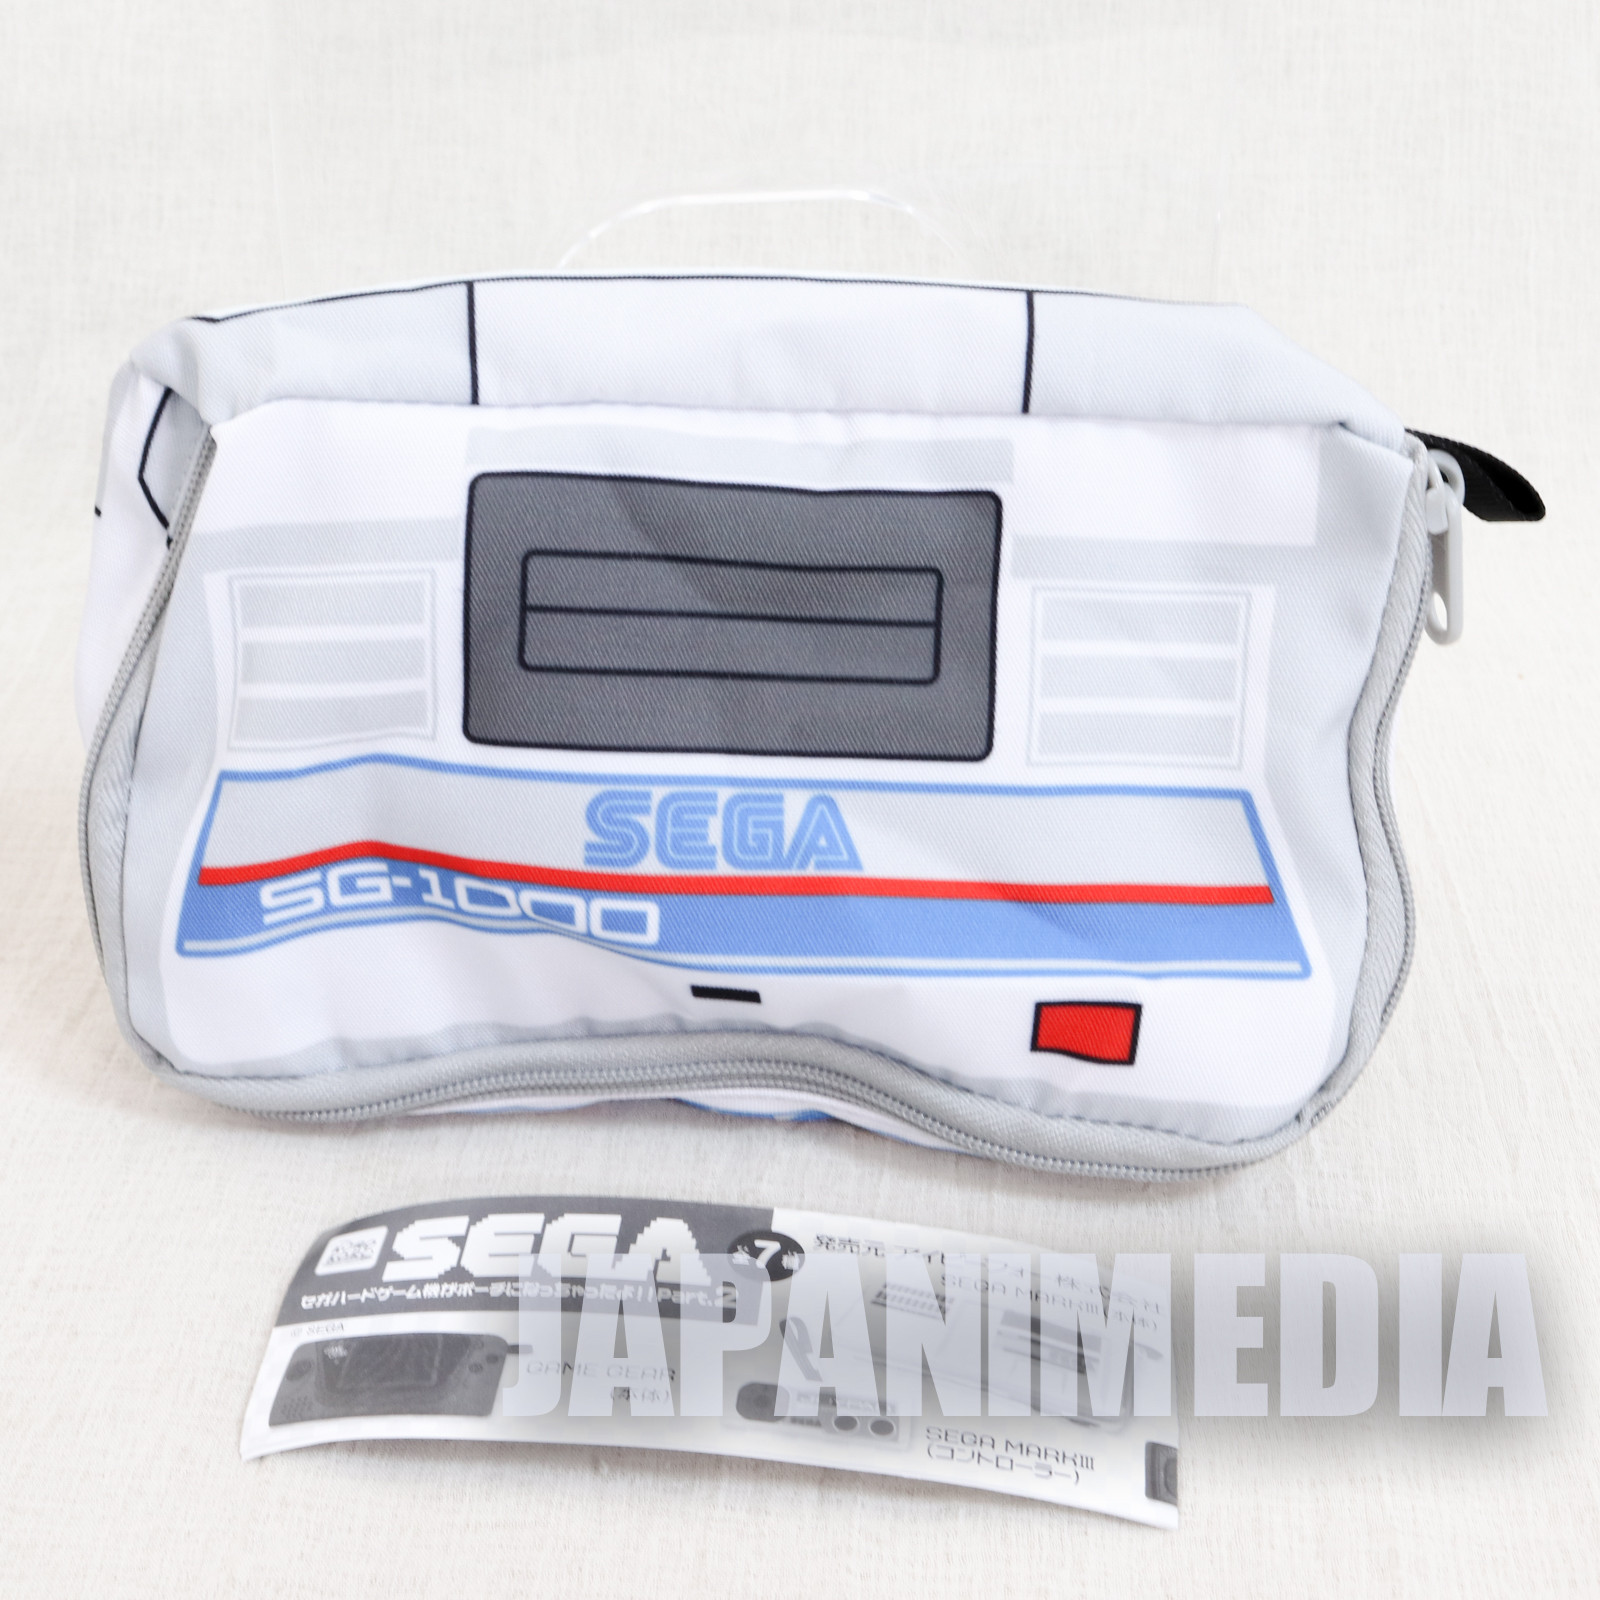 SG-1000 SEGA Game Console Machine Type Pouch Case JAPAN GAME